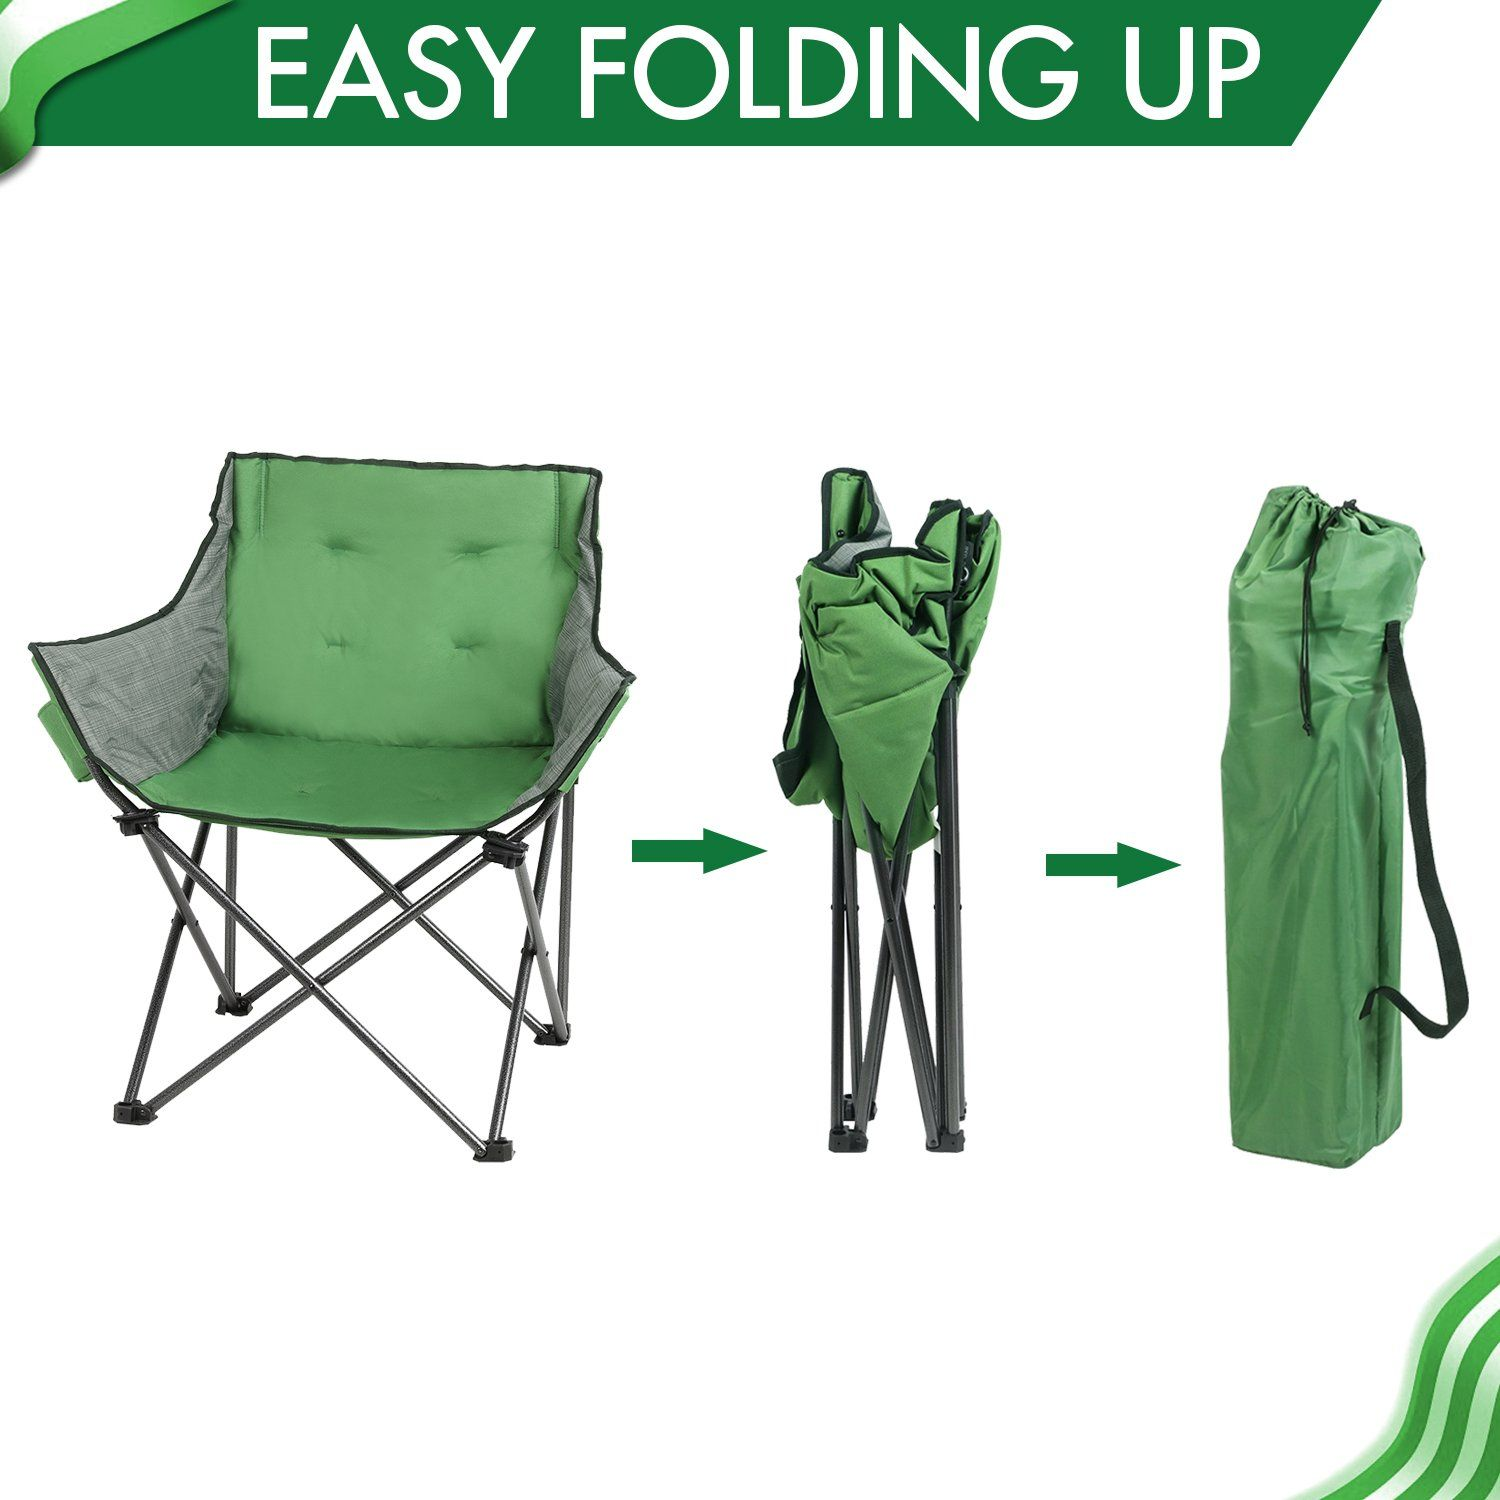 PORTAL Large Folding Camping Sofa Chair Padded Outdoor Club Chair with Cup Ho...